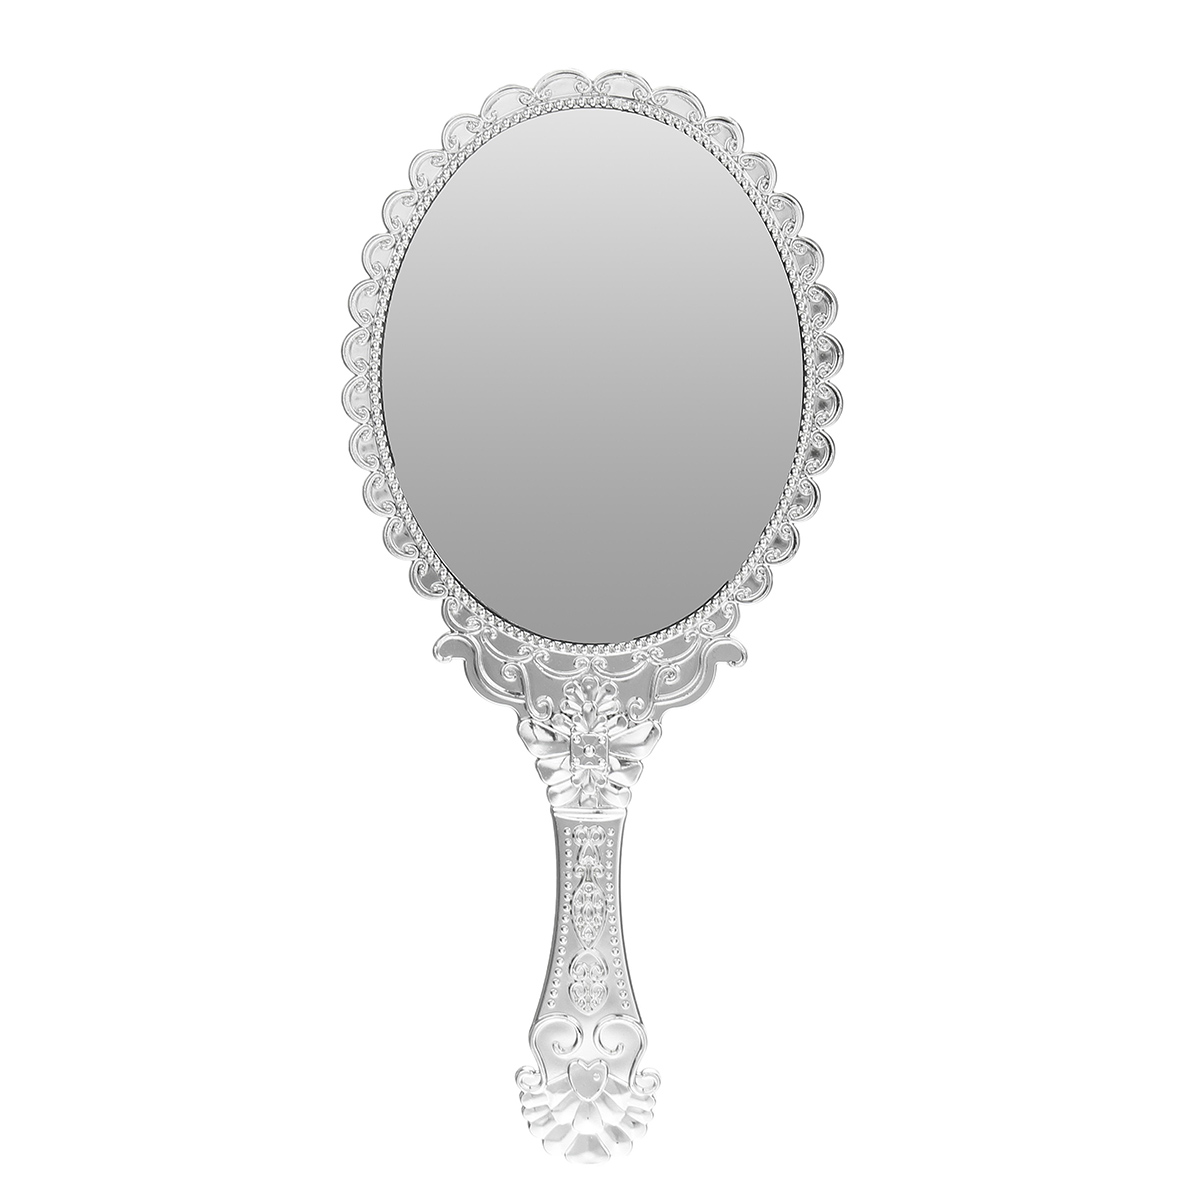 1pcs Cute Silver Vintage Ladies Floral Repousse Oval Round Makeup Hand Hold Mirror Princess Lady Makeup Beauty Dresser Gift